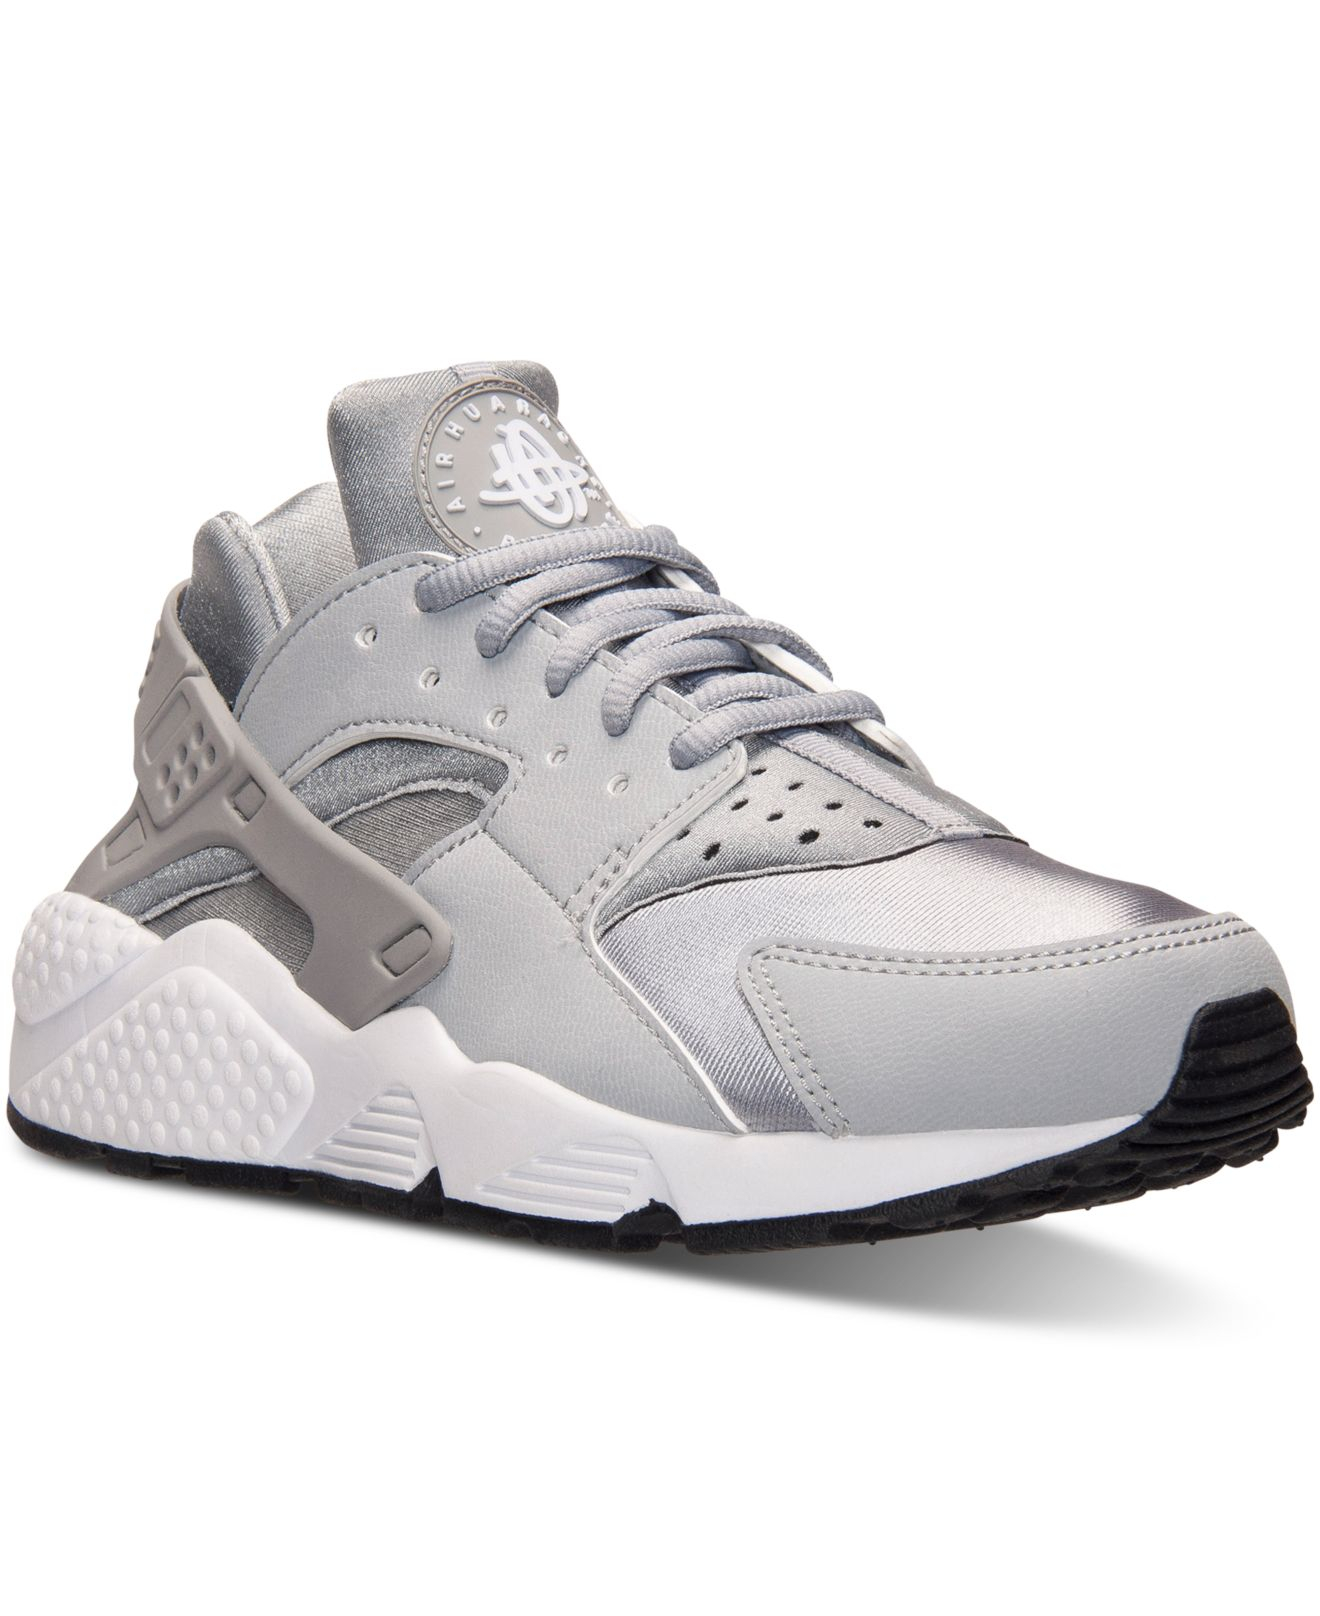 f4f37ddbf9d Gallery. Previously sold at  Macy s · Women s Nike Air Huarache Women s  Chukka Sneakers ...